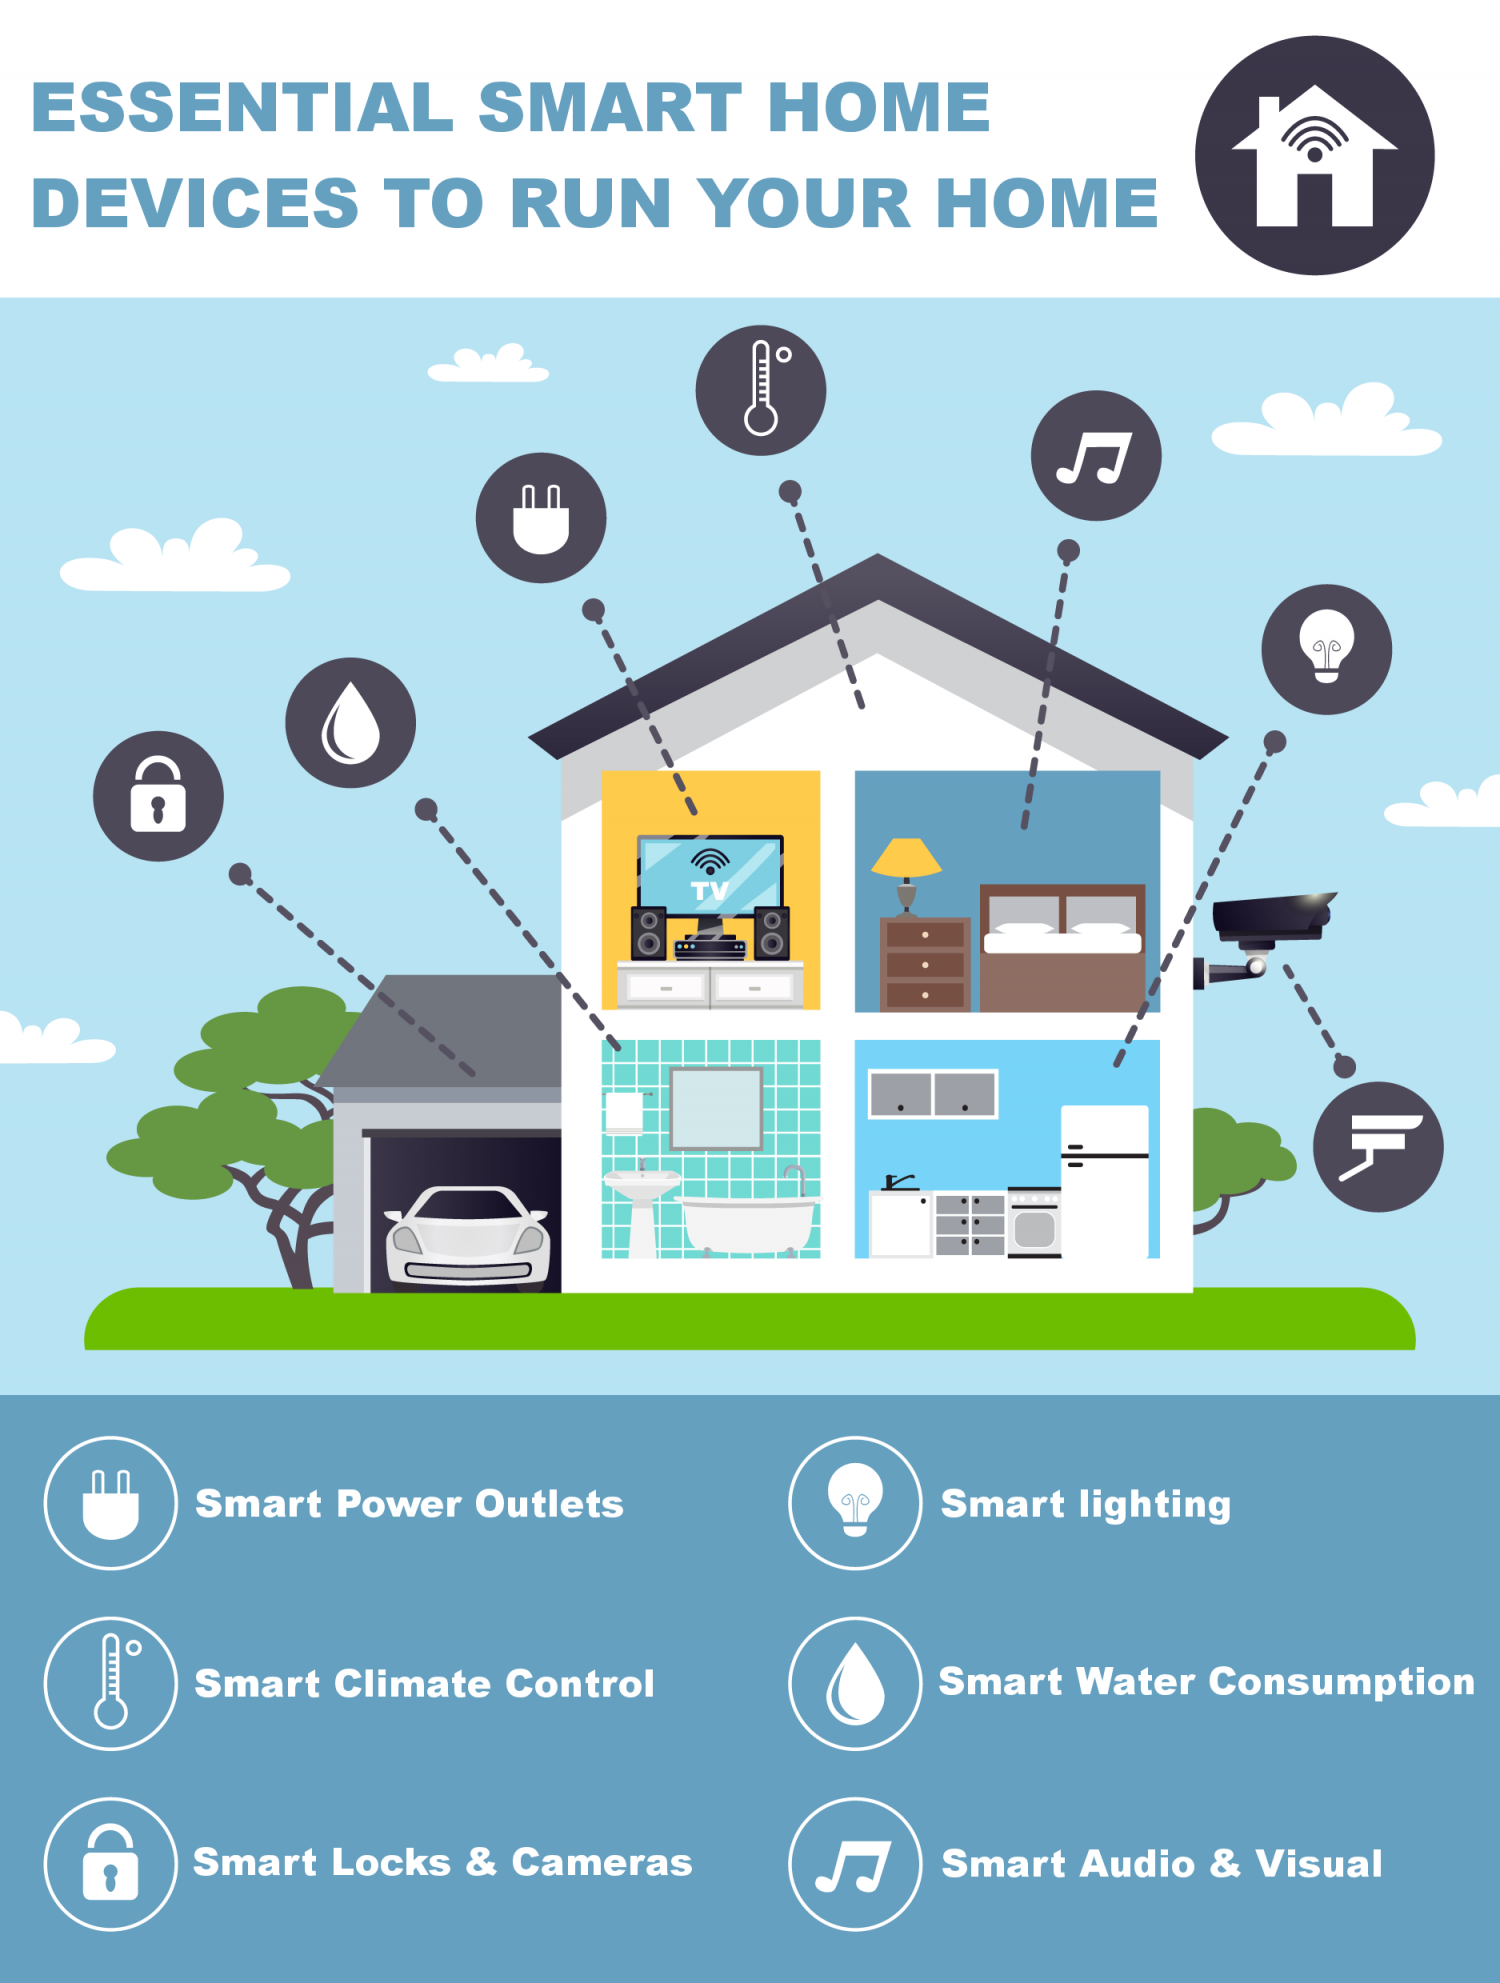 Essential Smart Home Devices To Run Your Home Infographic